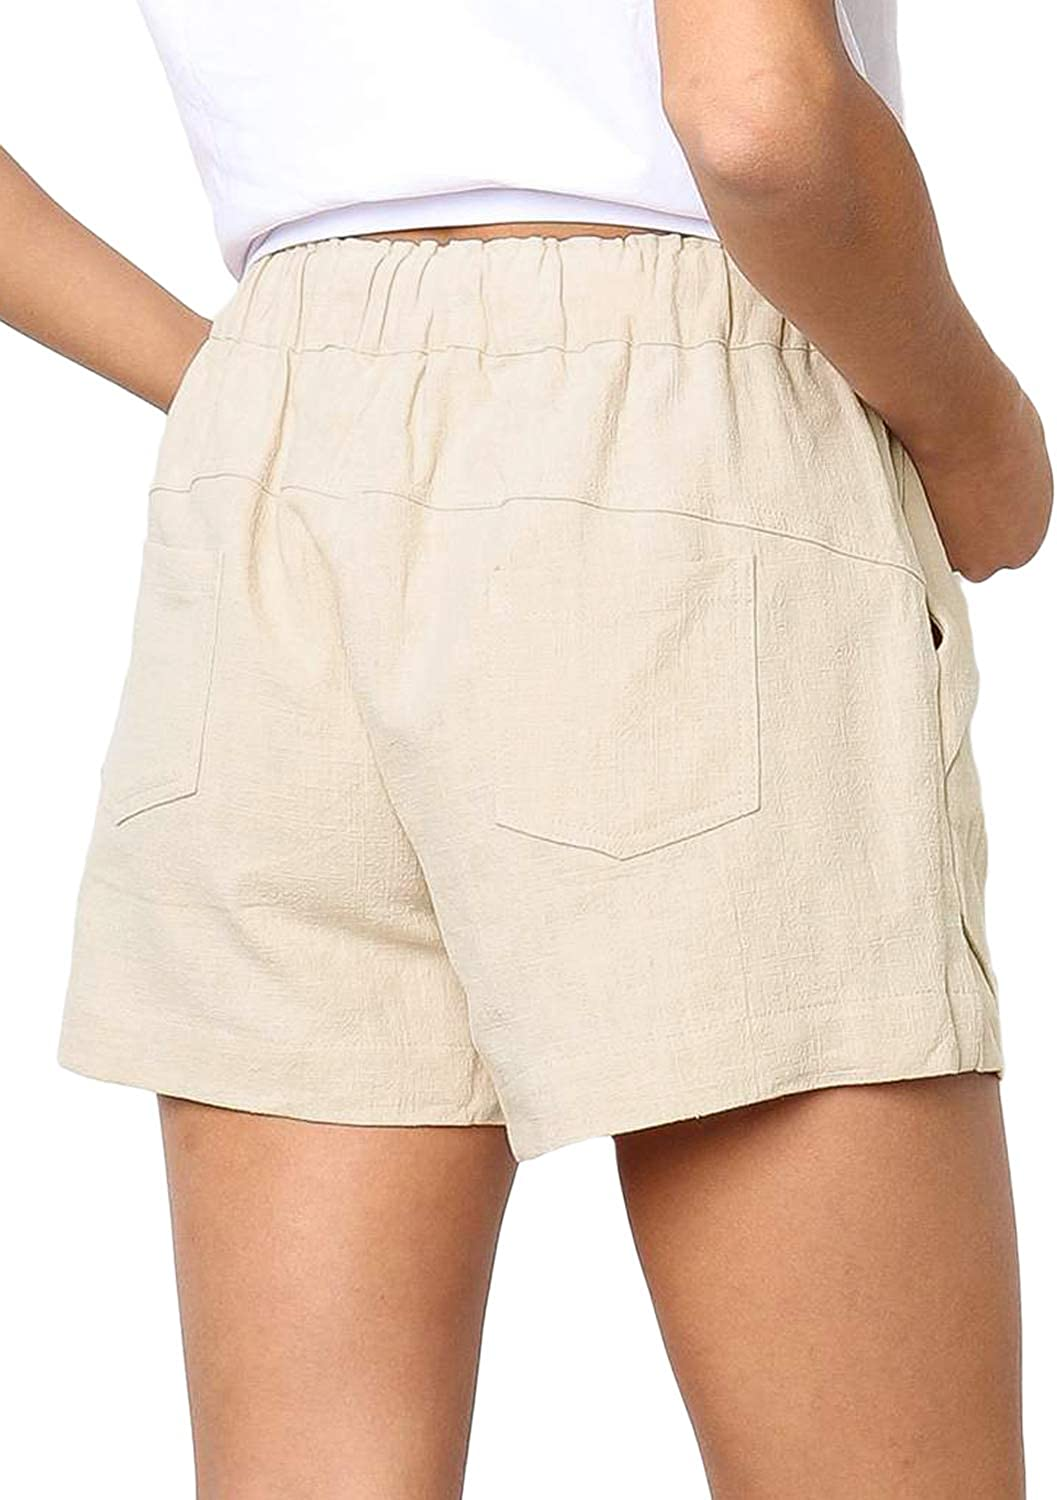 LOSRLY Women Petite Cotton Drawstring Elastic Waist Casual Comfy Solid Linen Shorts with Pockets Beige S